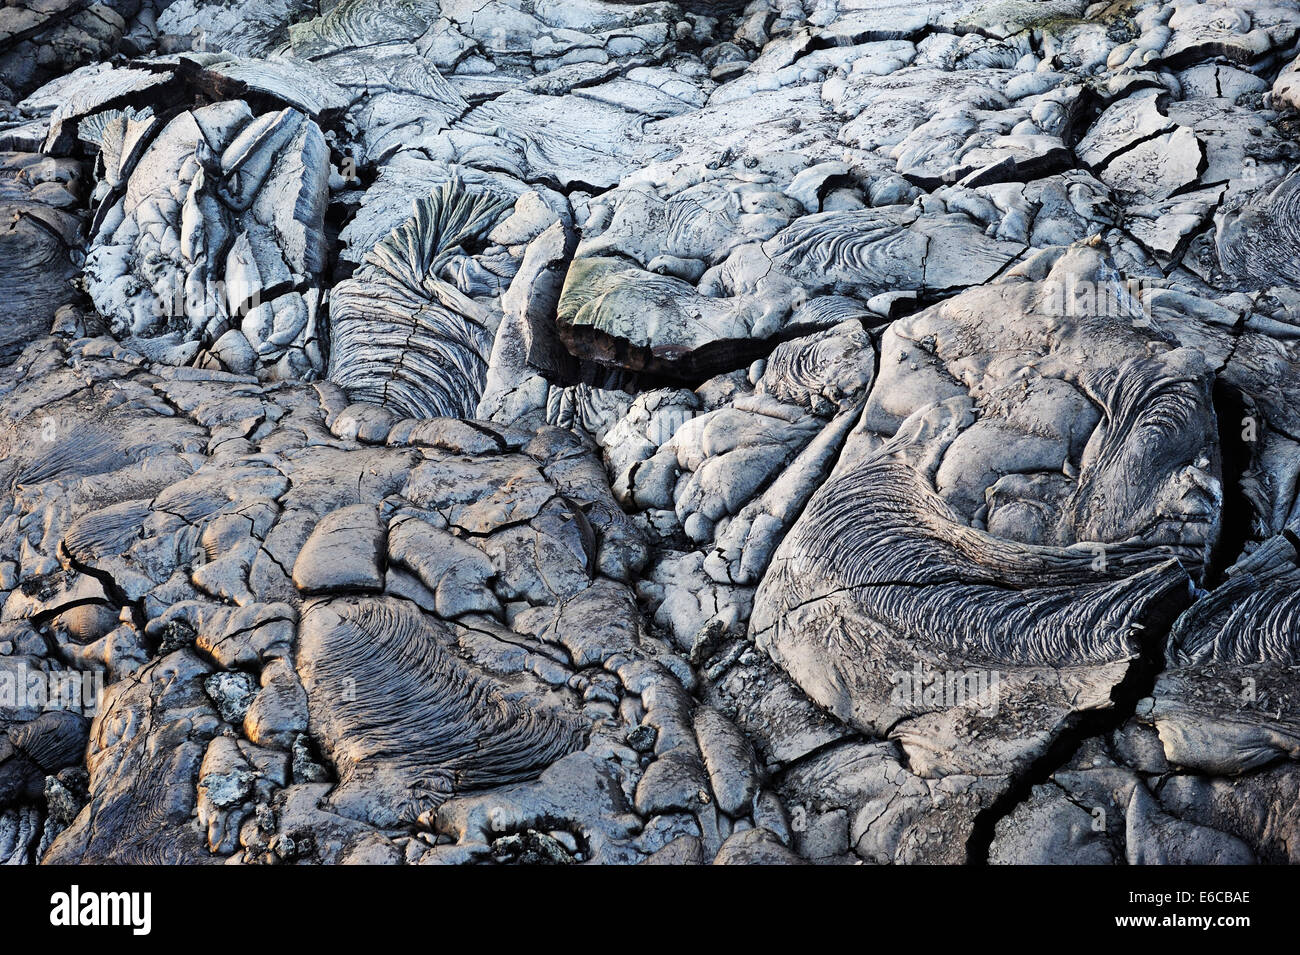 Cooled pahoehoe lava flow, Kilauea Volcano, Big Island, Hawaii Islands, USA - Stock Image